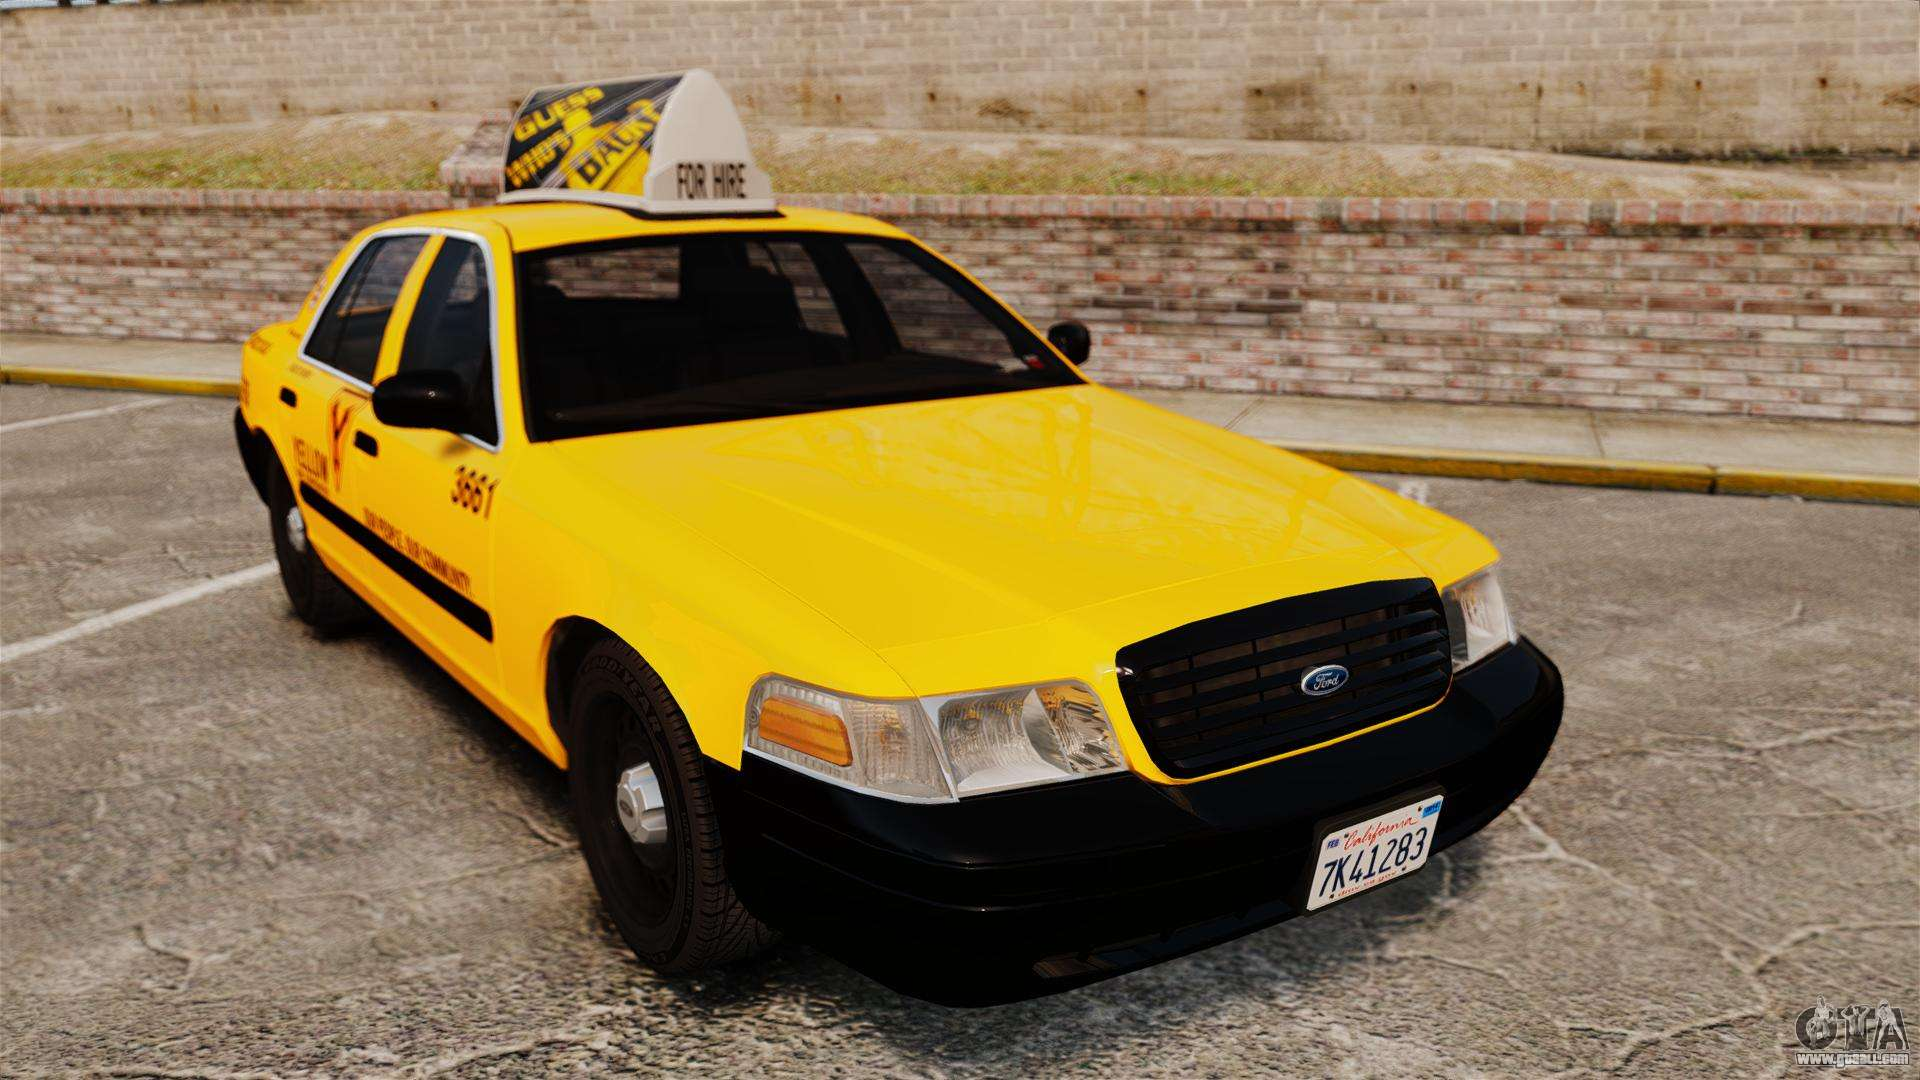 Ford crown victoria 1999 sf yellow cab for gta 4 for Schuhschrank yellow cab